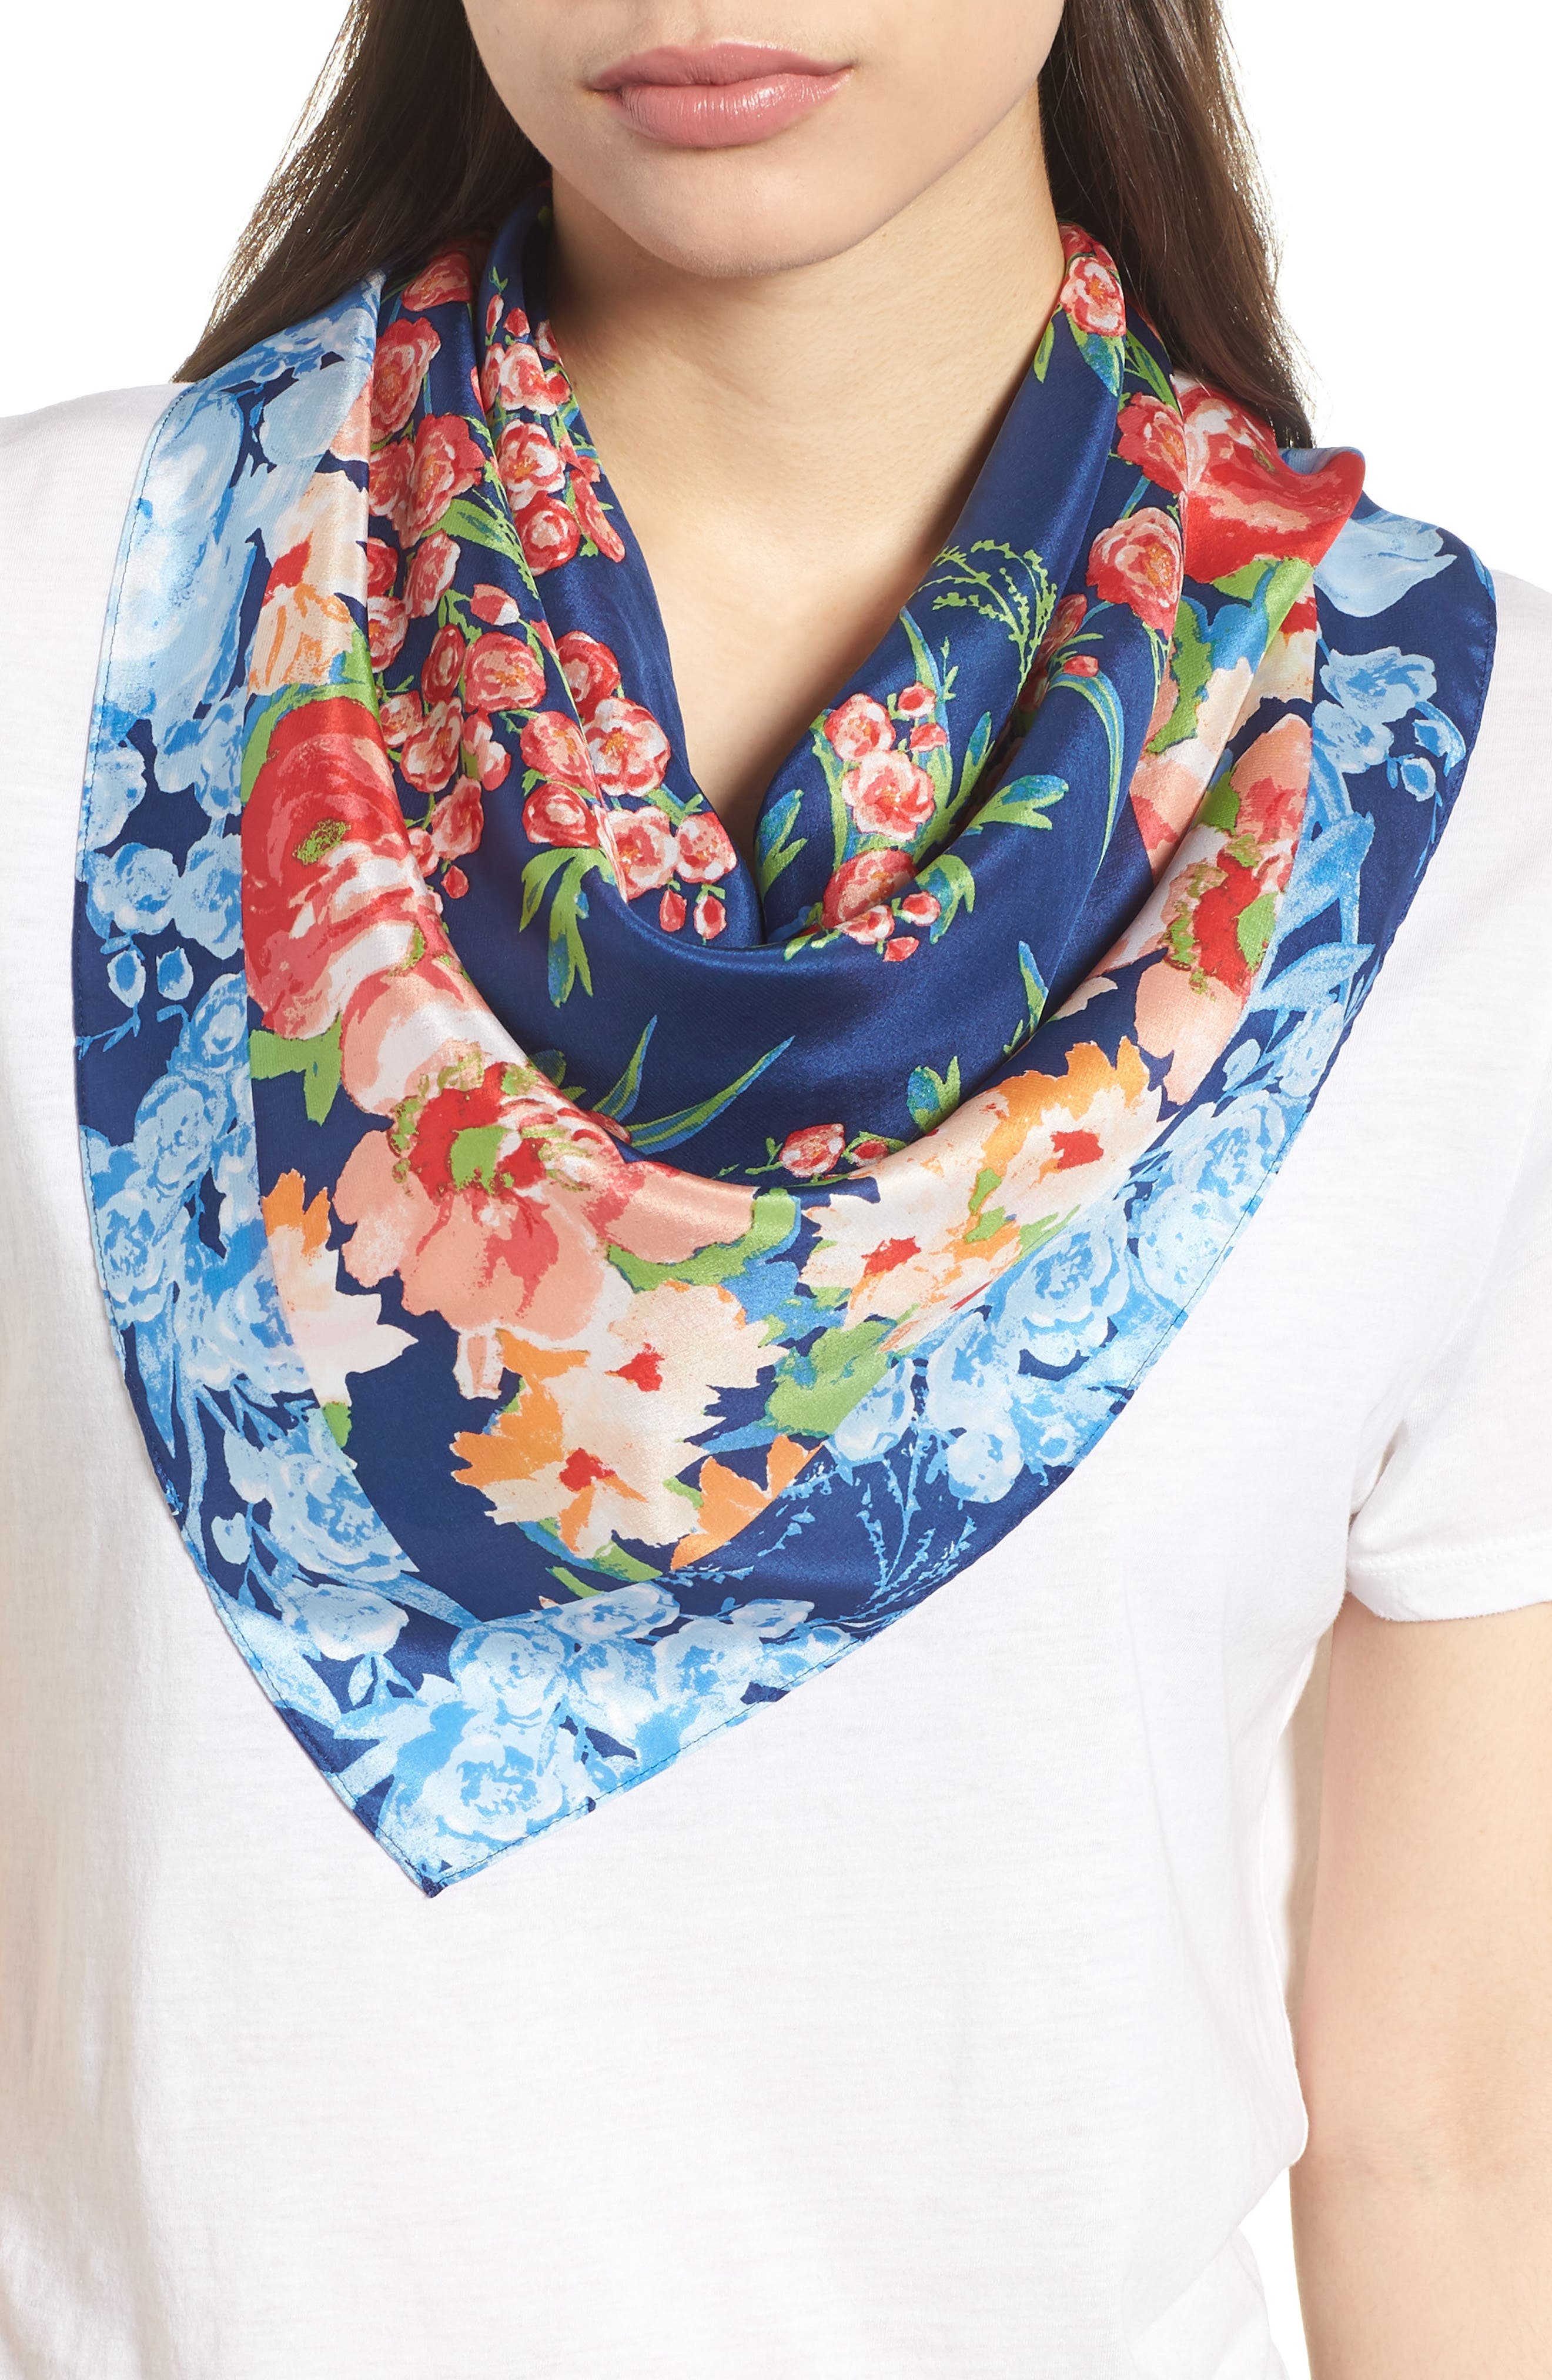 Airlie Beach Floral Silk Square Scarf,                             Main thumbnail 1, color,                             NAVY